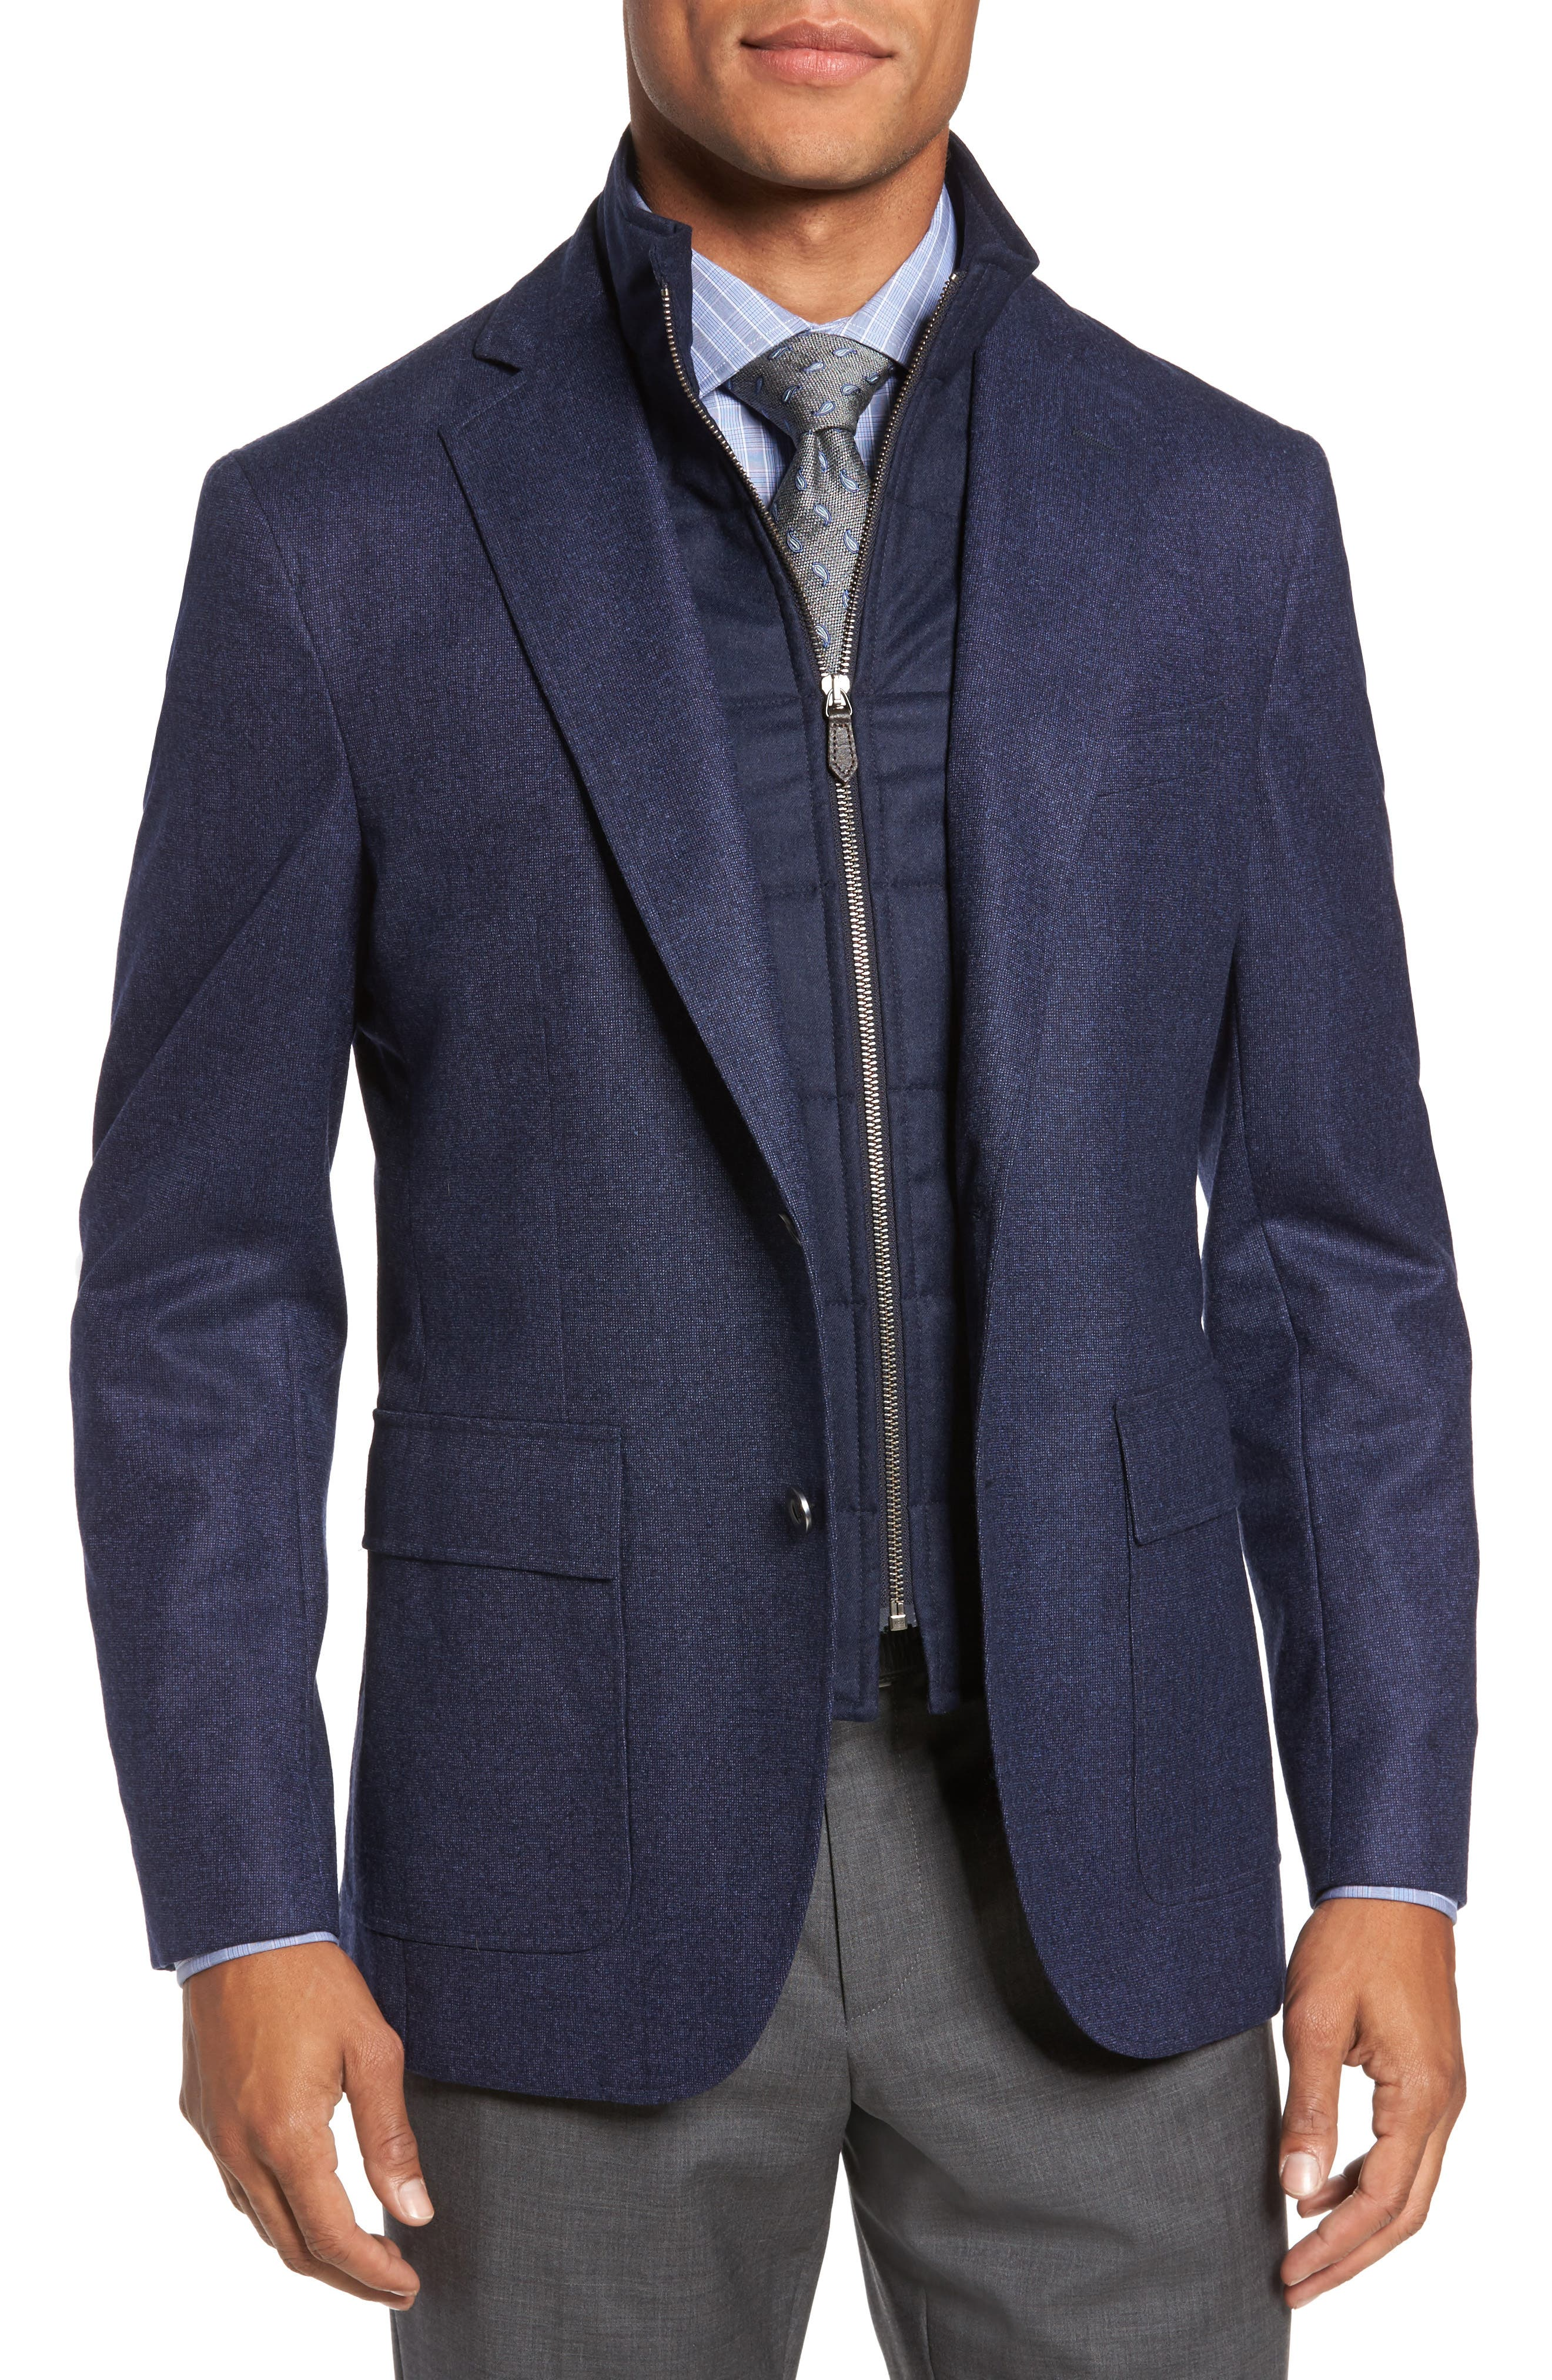 Aaron Classic Fit Wool Blazer,                             Main thumbnail 1, color,                             410